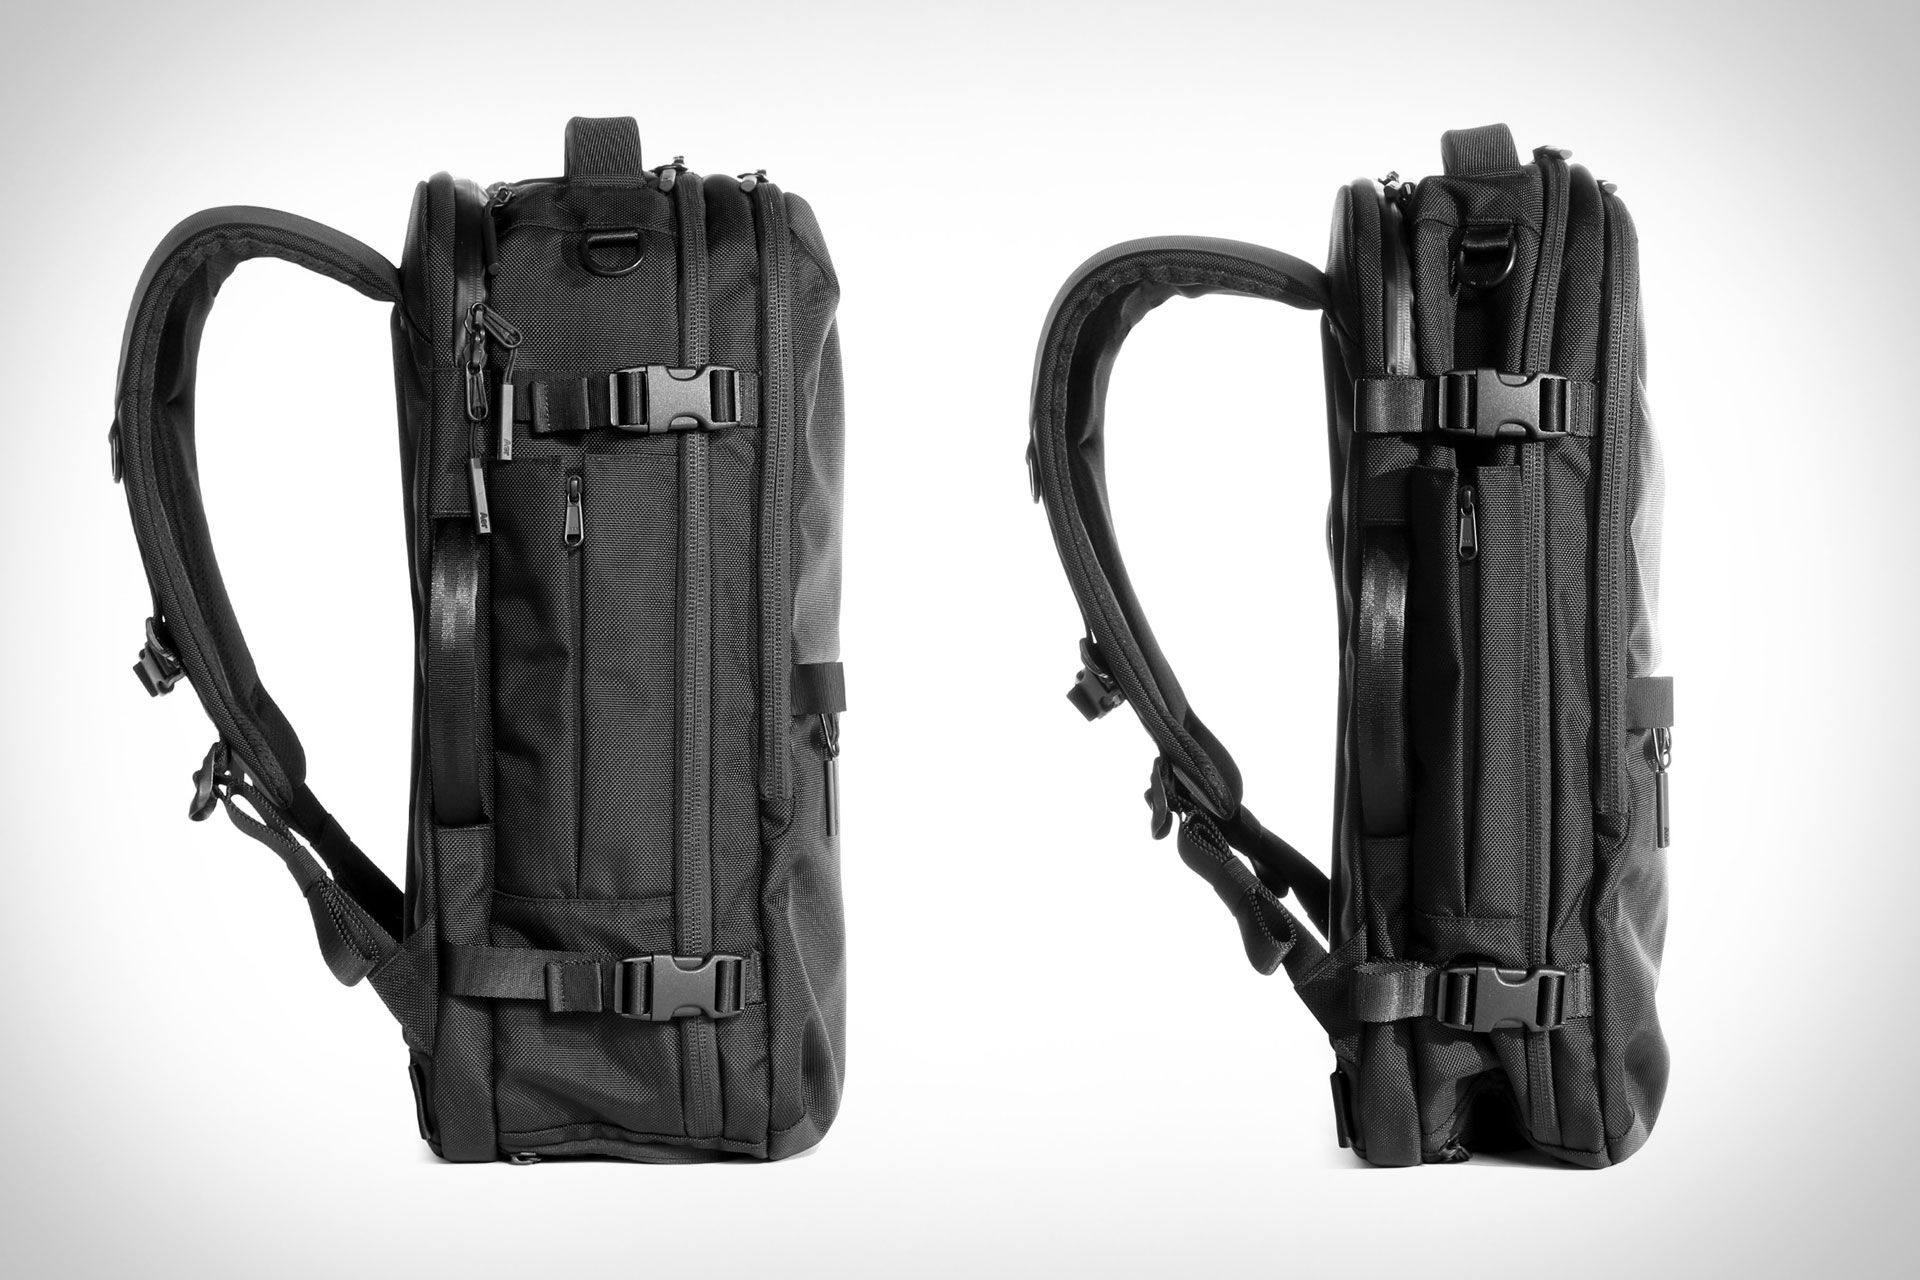 Aer Travel Pack 2 | bags | Travel packing, Carry on packing